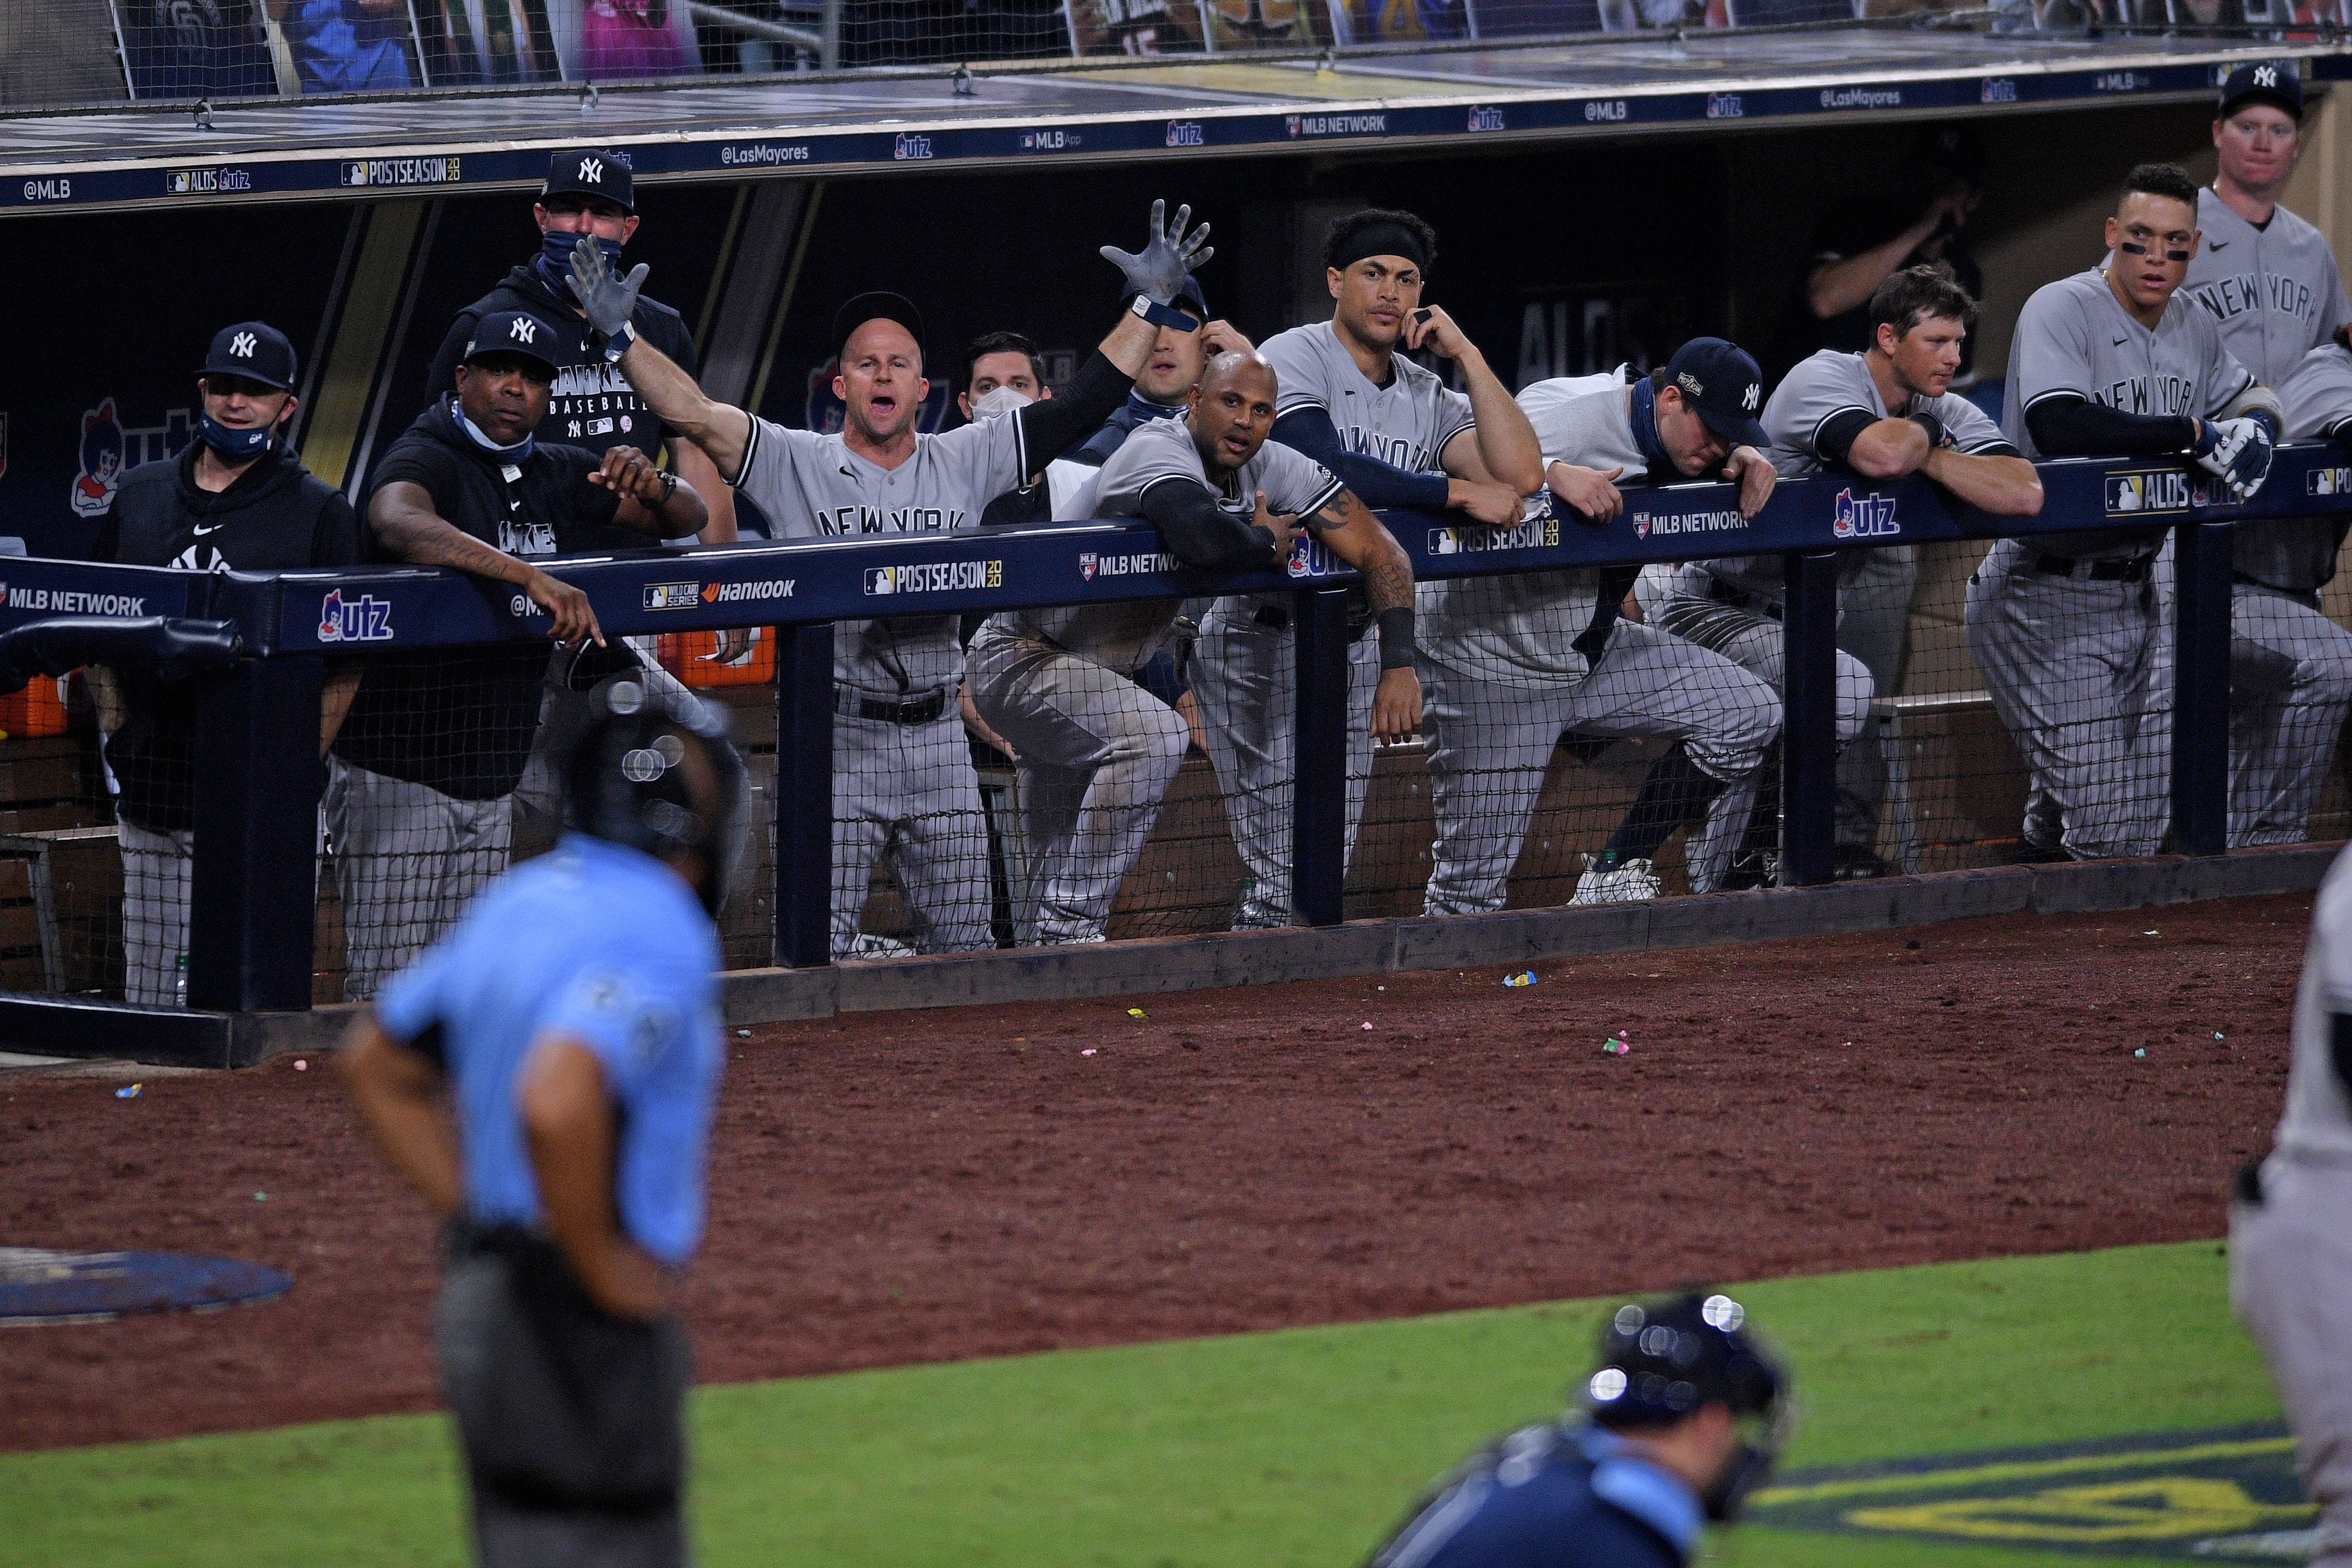 Home plate umpire CB Bucknor struggled in Yankees-Rays ALDS Game 2. Here's proof.